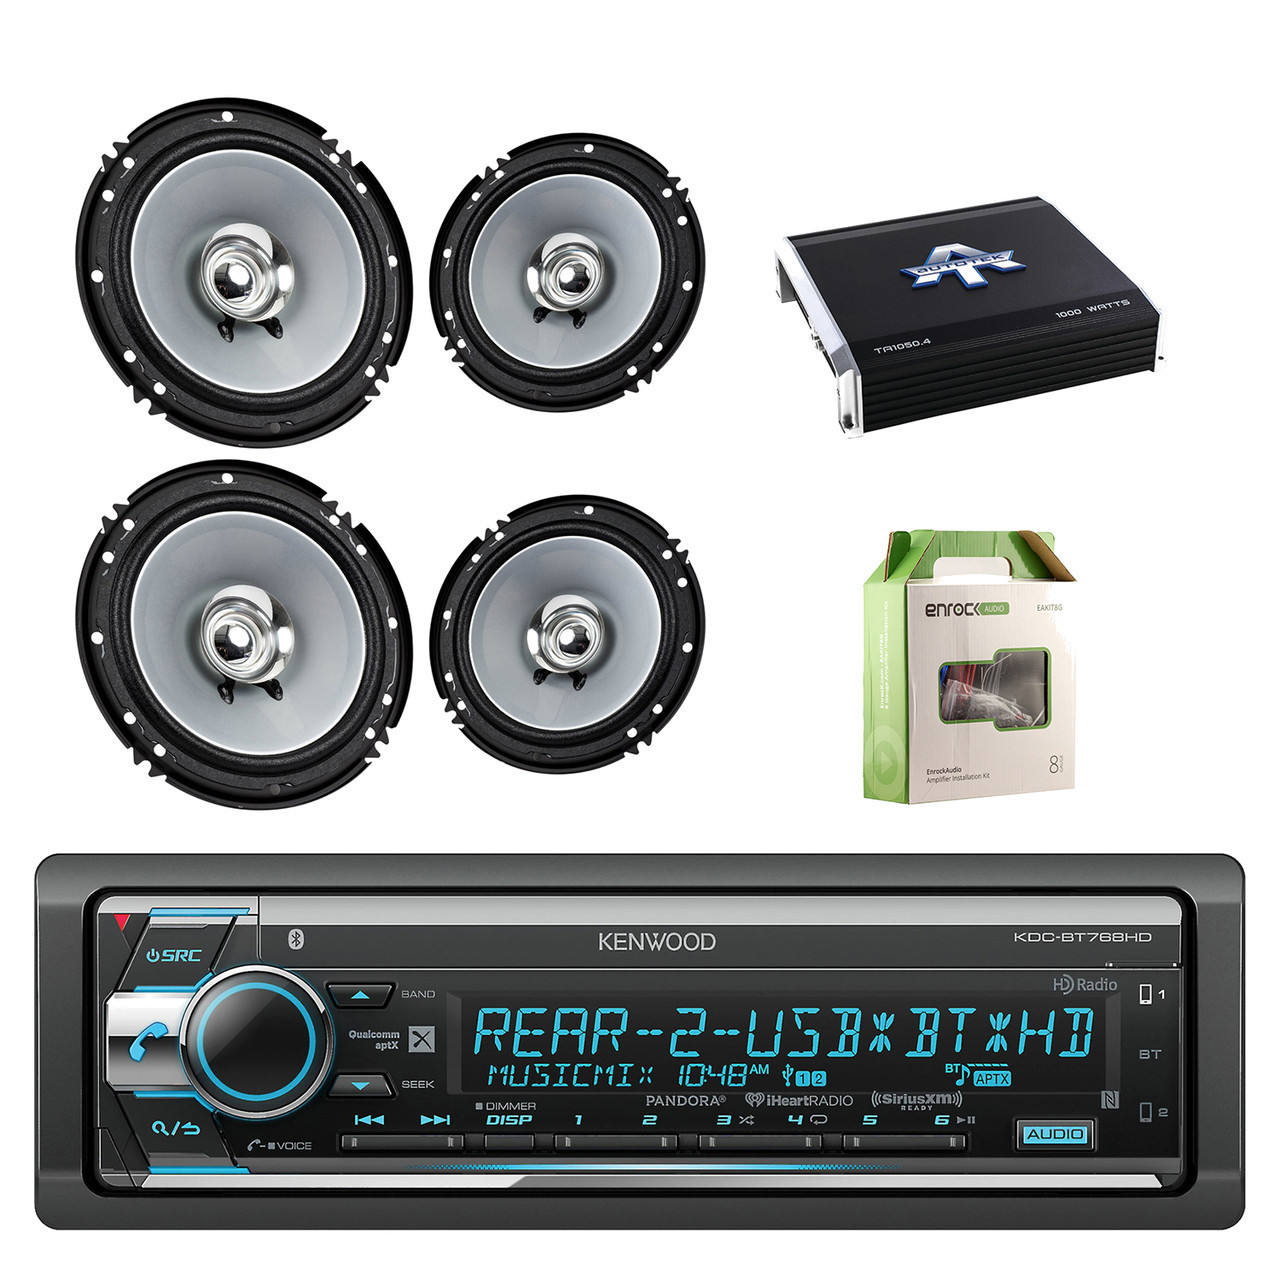 kenwood single din cd am fm car audio receiver w bluetooth with kenwood 6 5 inch 2 way 600 watts car audio coaxial speakers stereo 2 pairs  [ 1280 x 1280 Pixel ]